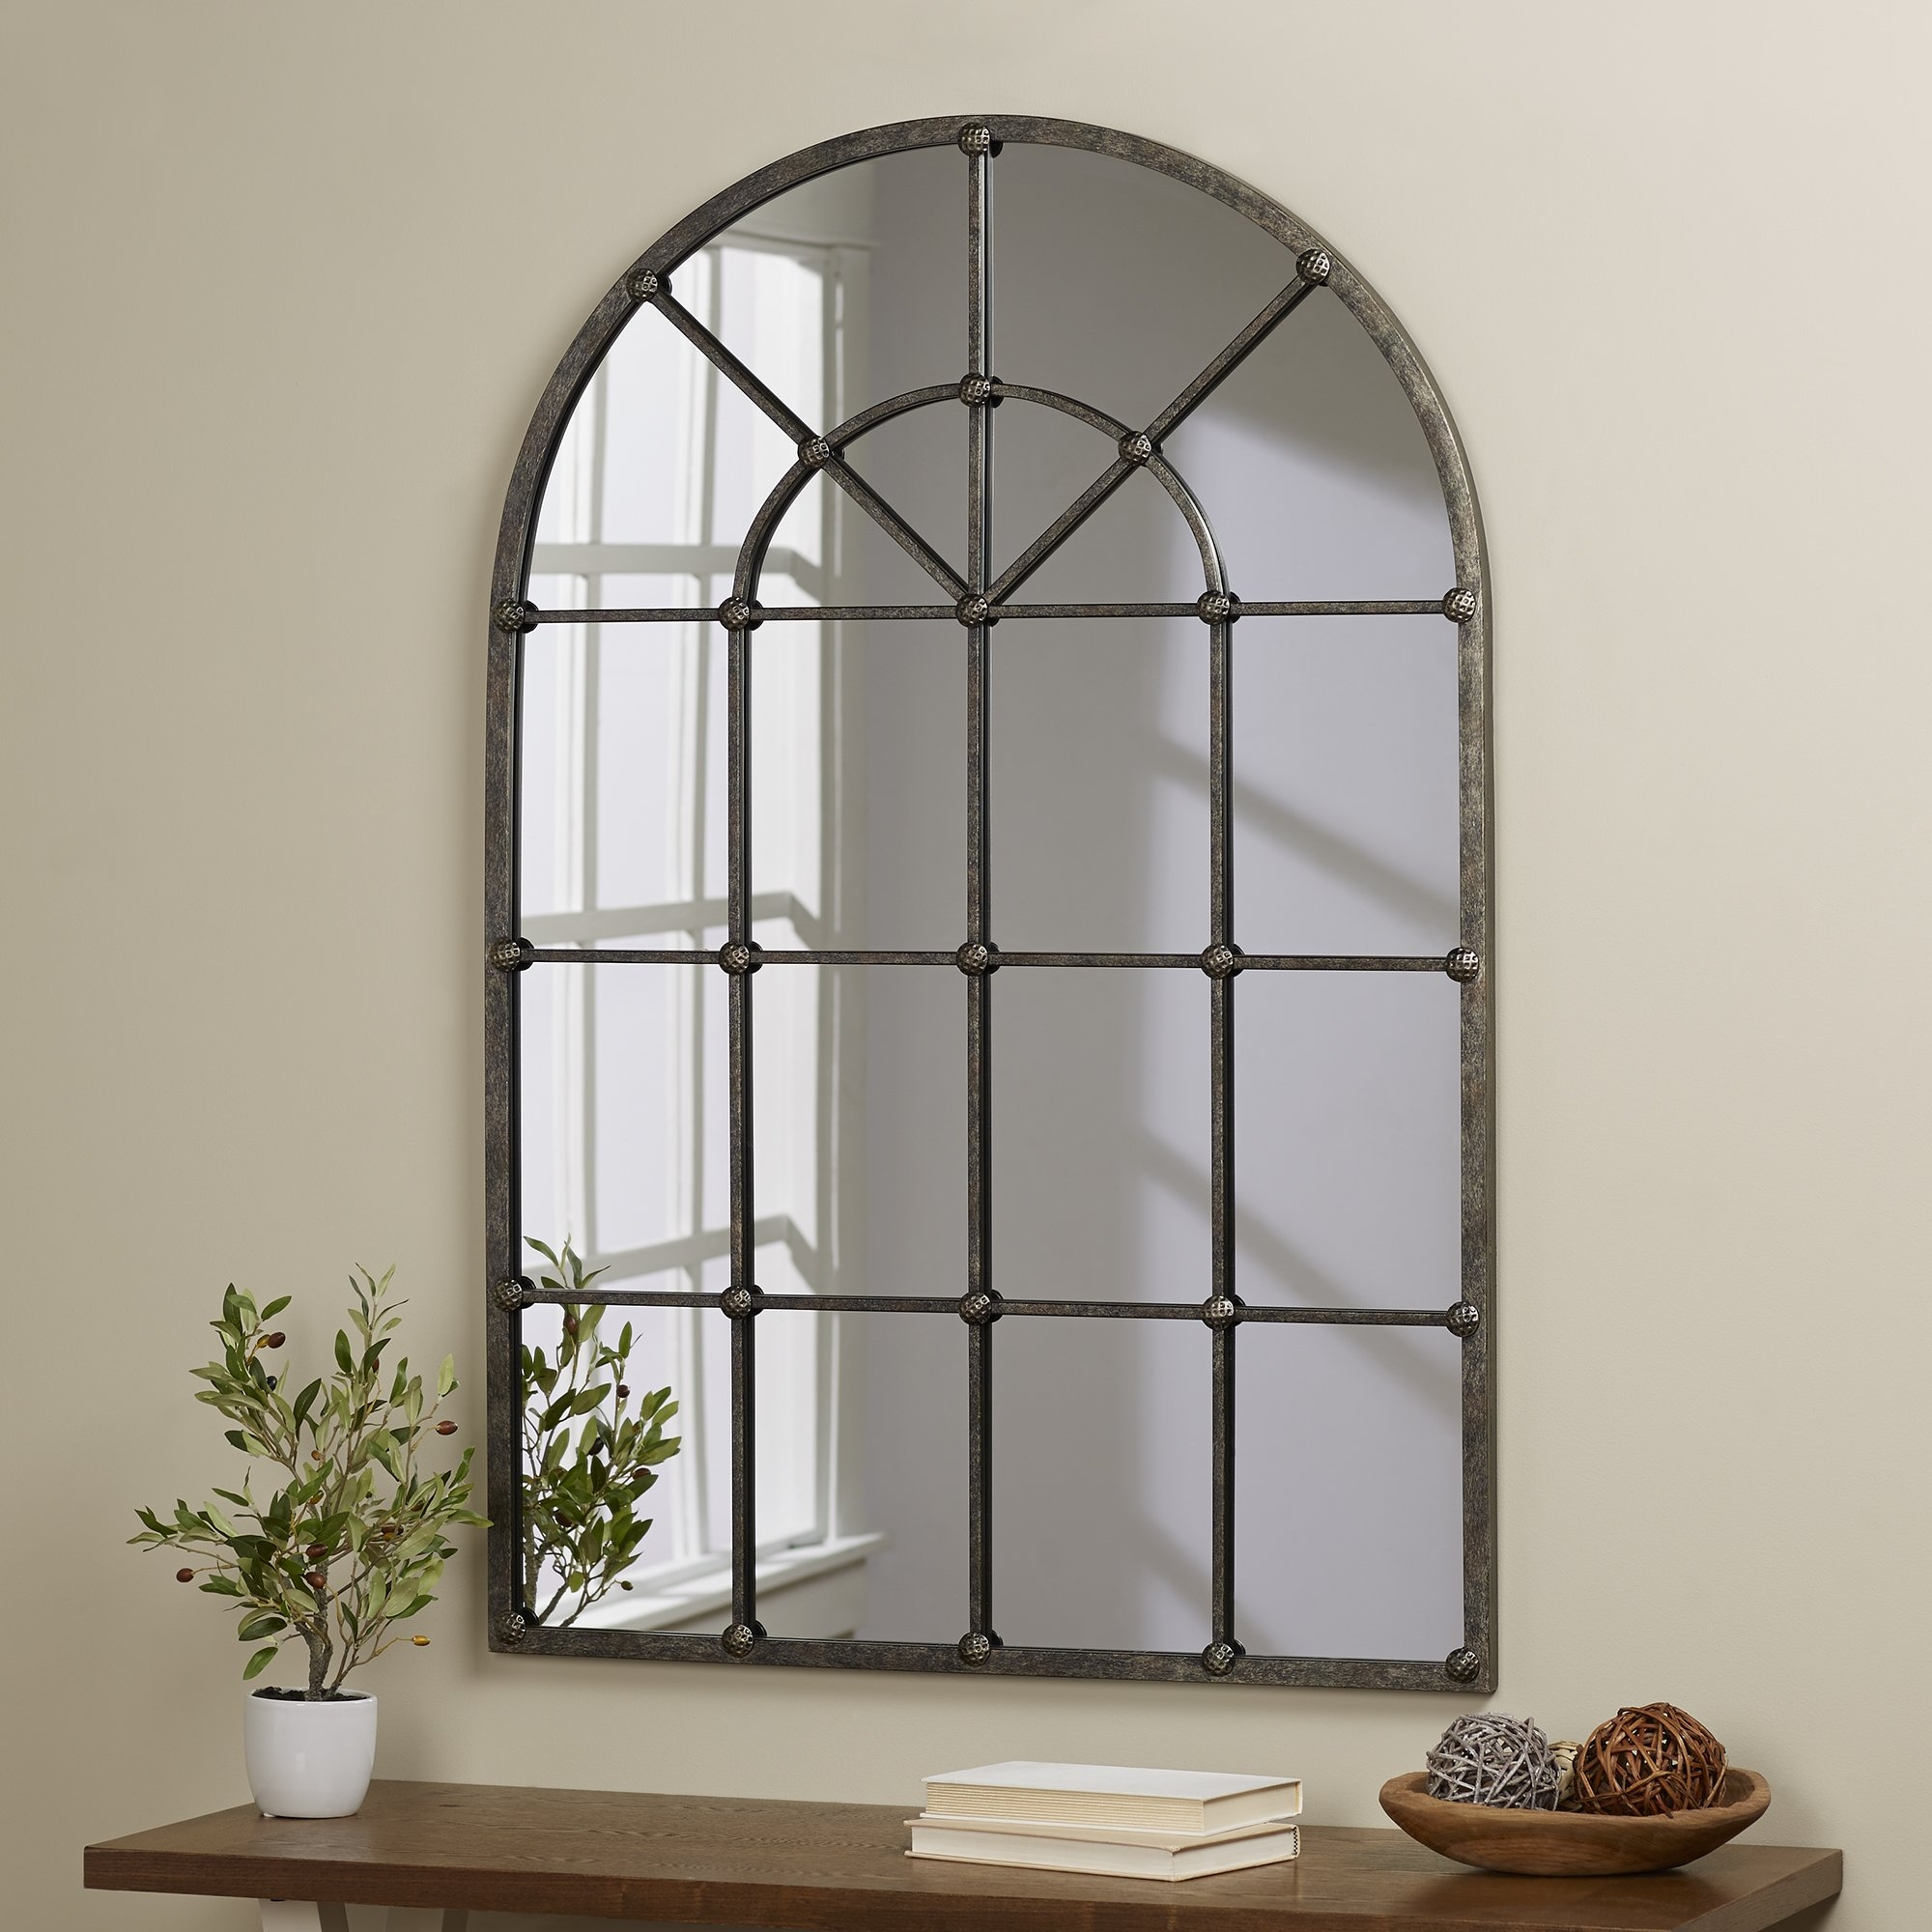 Loft Style Window Mirror 15 Collection Of Arched Wall Mirrors Mirror Ideas